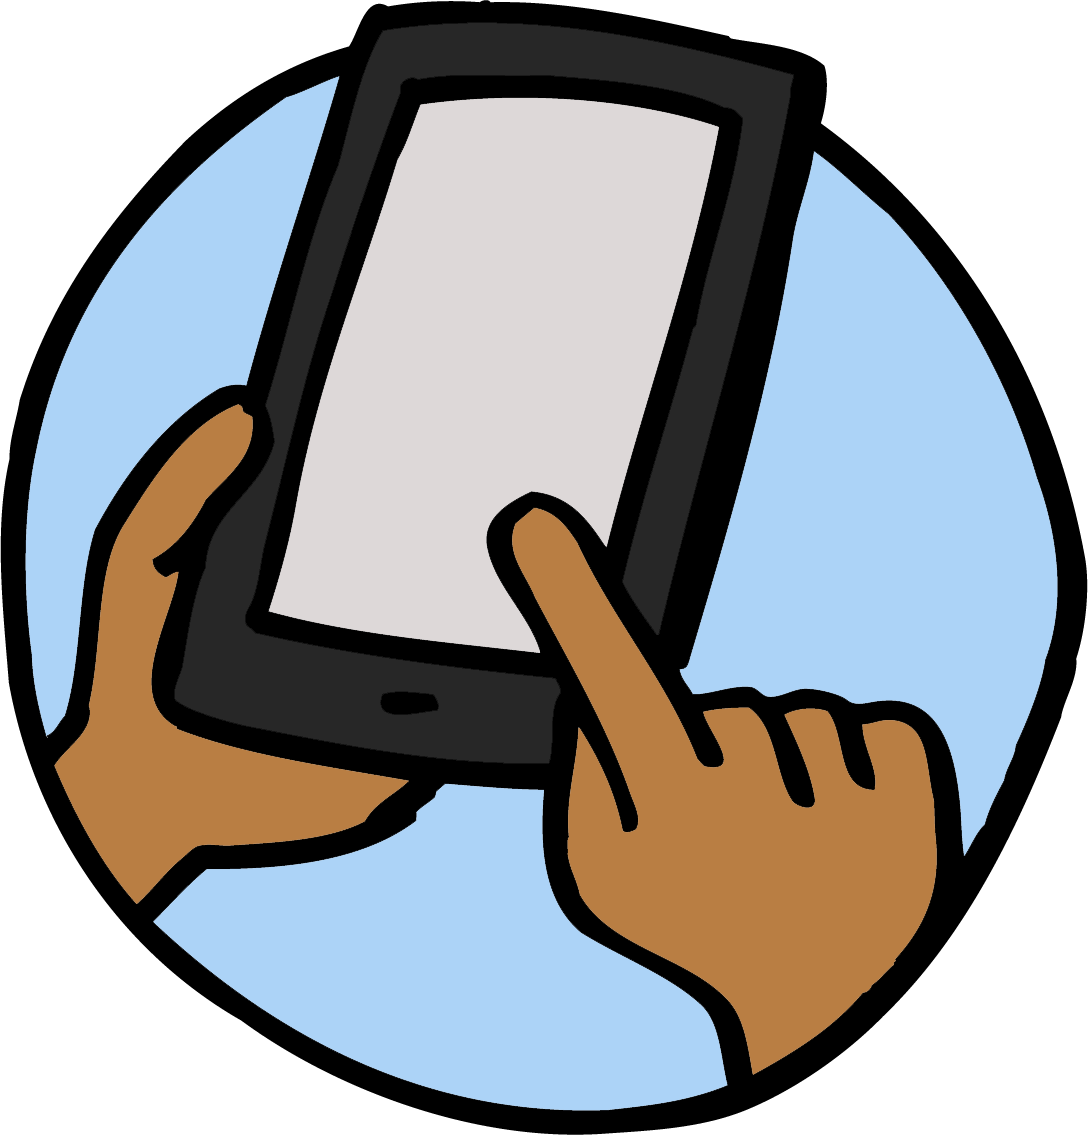 Smart-Phone-with-one-finger